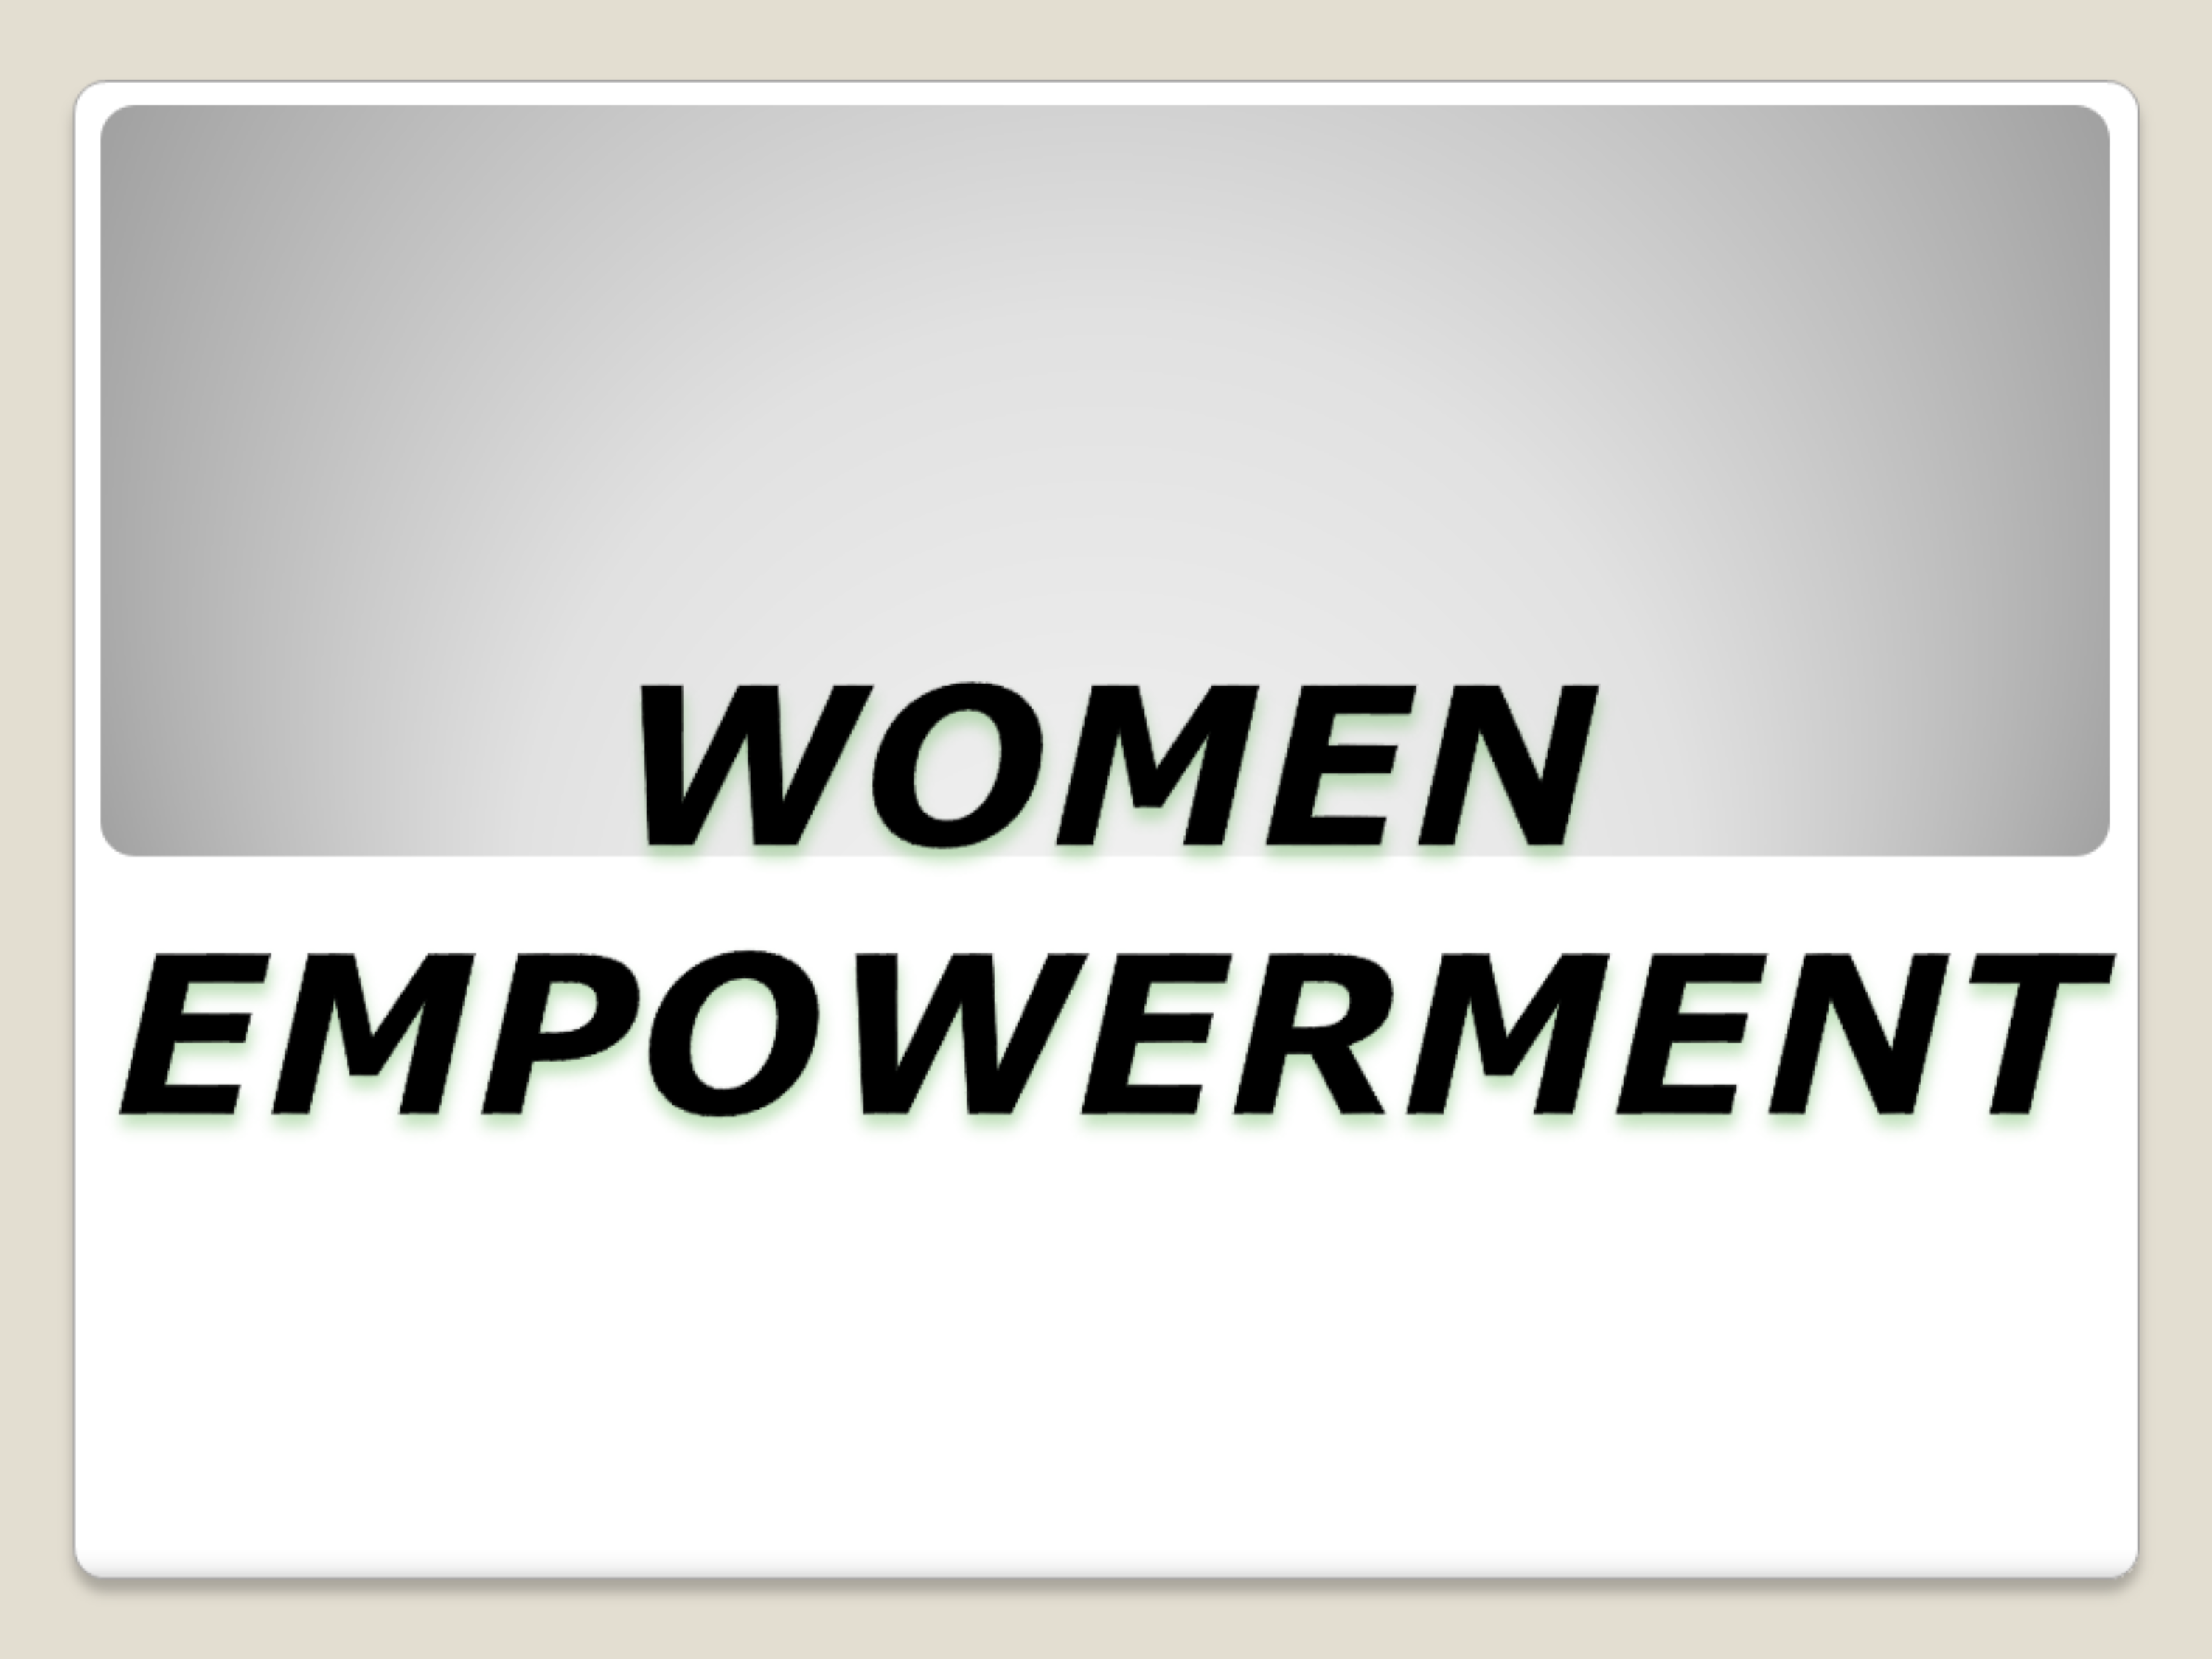 Original It Was Followed By A PowerPoint Presentation PPT  Women The Principal Said International Womens Day Should Not Only Be The Day To Mark The Significance Of Women, Rather Everyday Should Be Celebrated As The Day Of Their